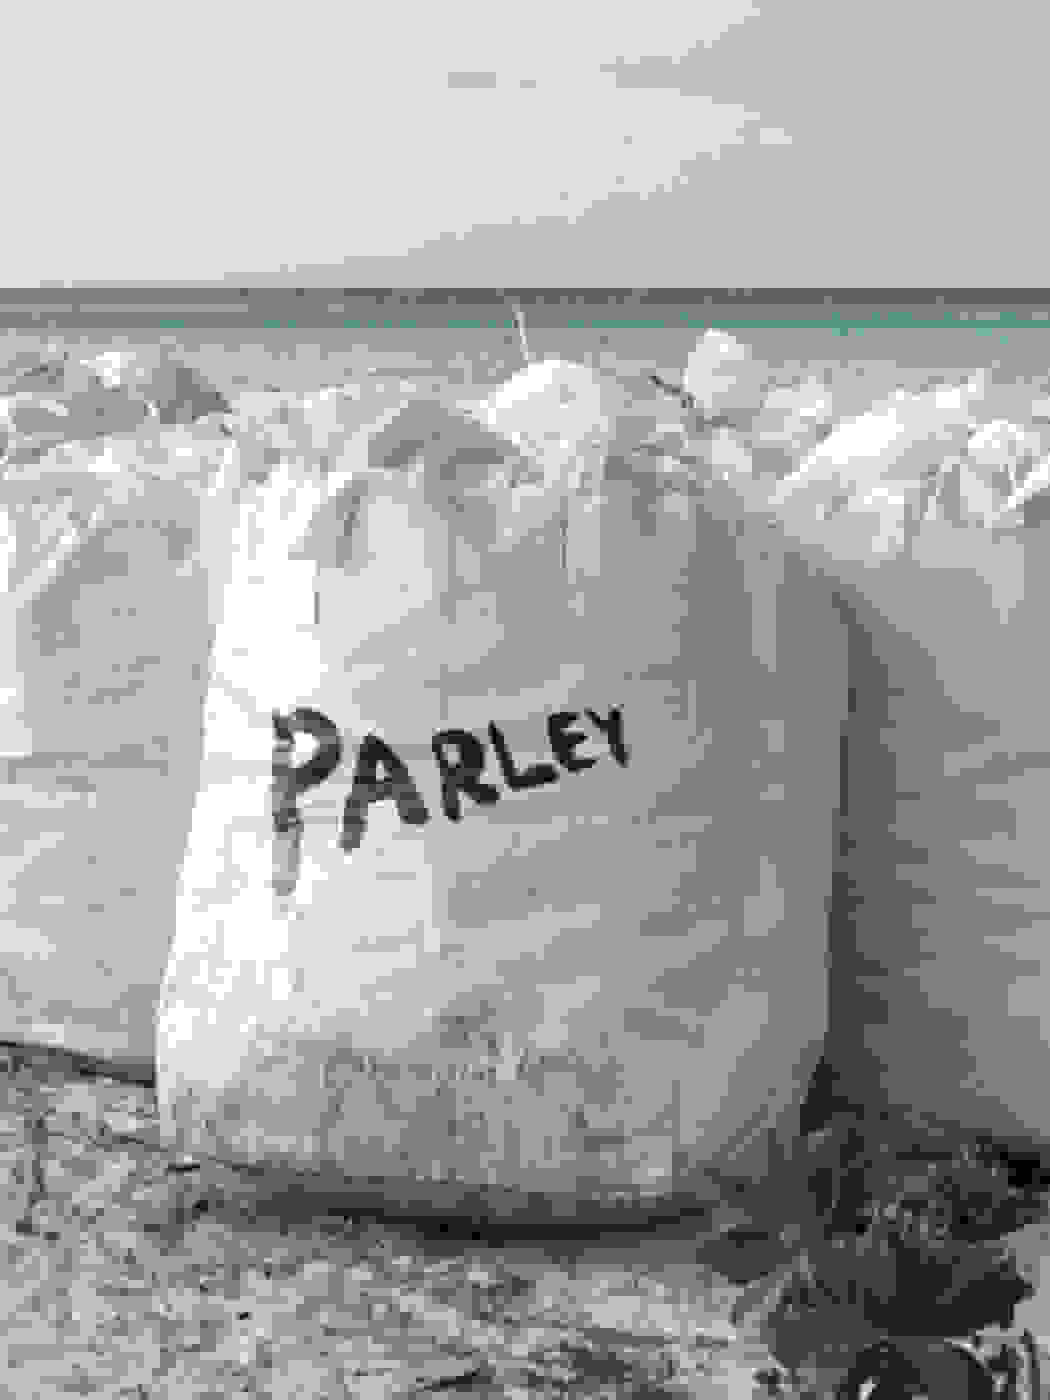 A bag with Parley logo is filled with plastic waste collected on the beach